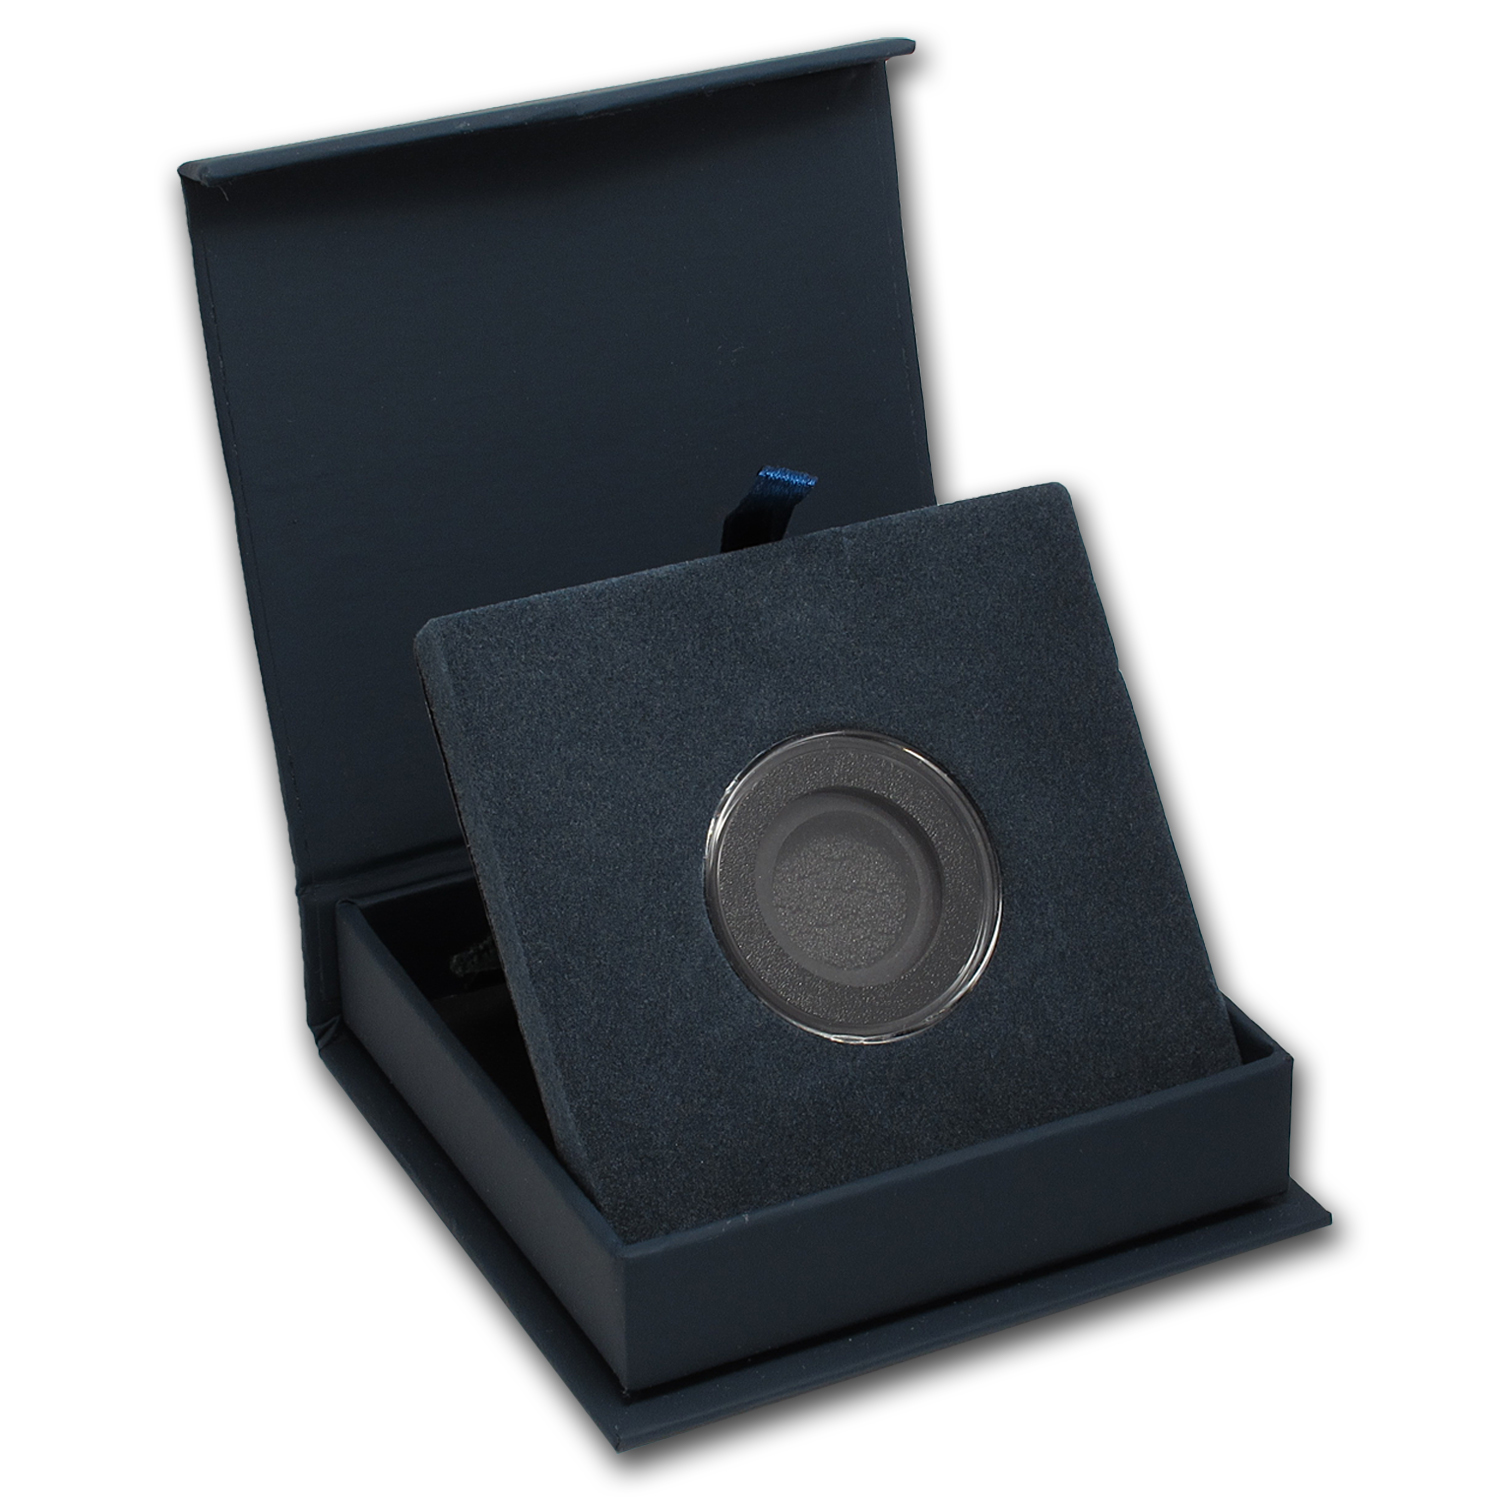 APMEX Gift Box - Includes 23 mm Air-Tite Holder with Gasket